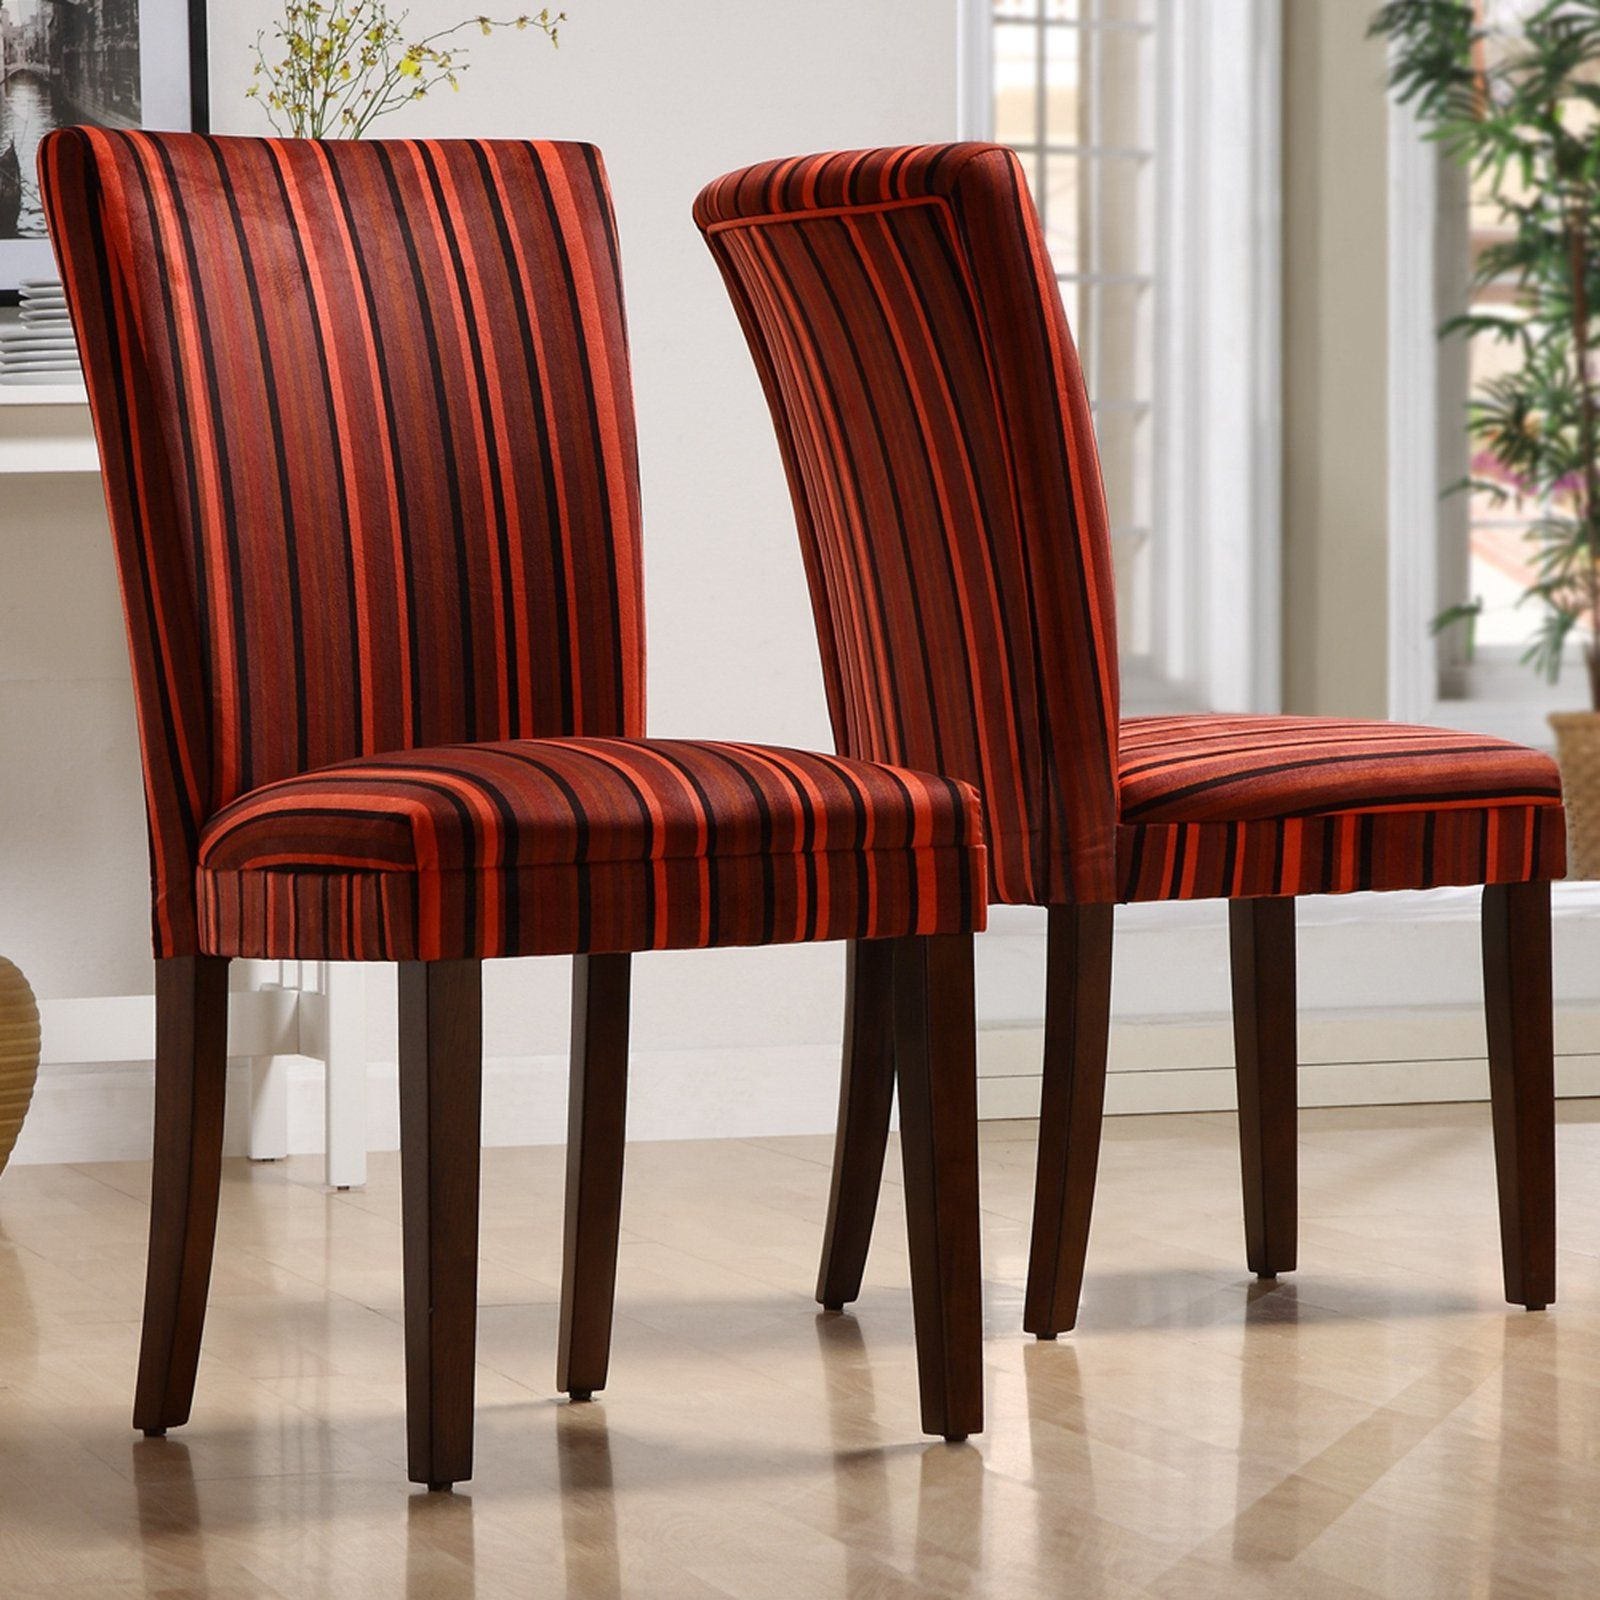 Homelegance royal red striped design fabric parson chairs for Red dining room chairs